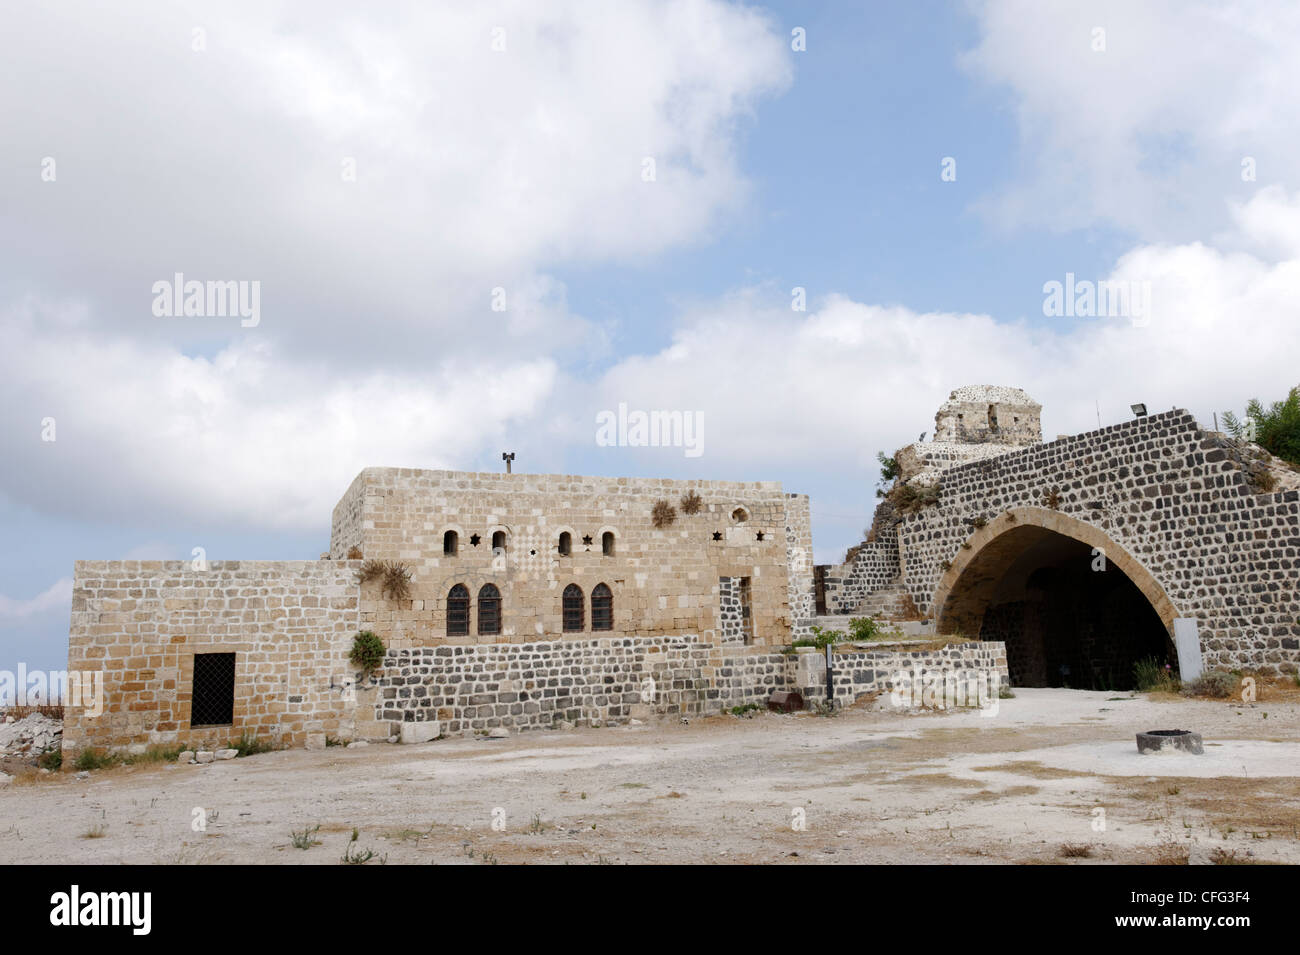 Qalaat Marqab. Syria. View of the great hall on the crusader castles inner courtyard. In the centre is well connected - Stock Image